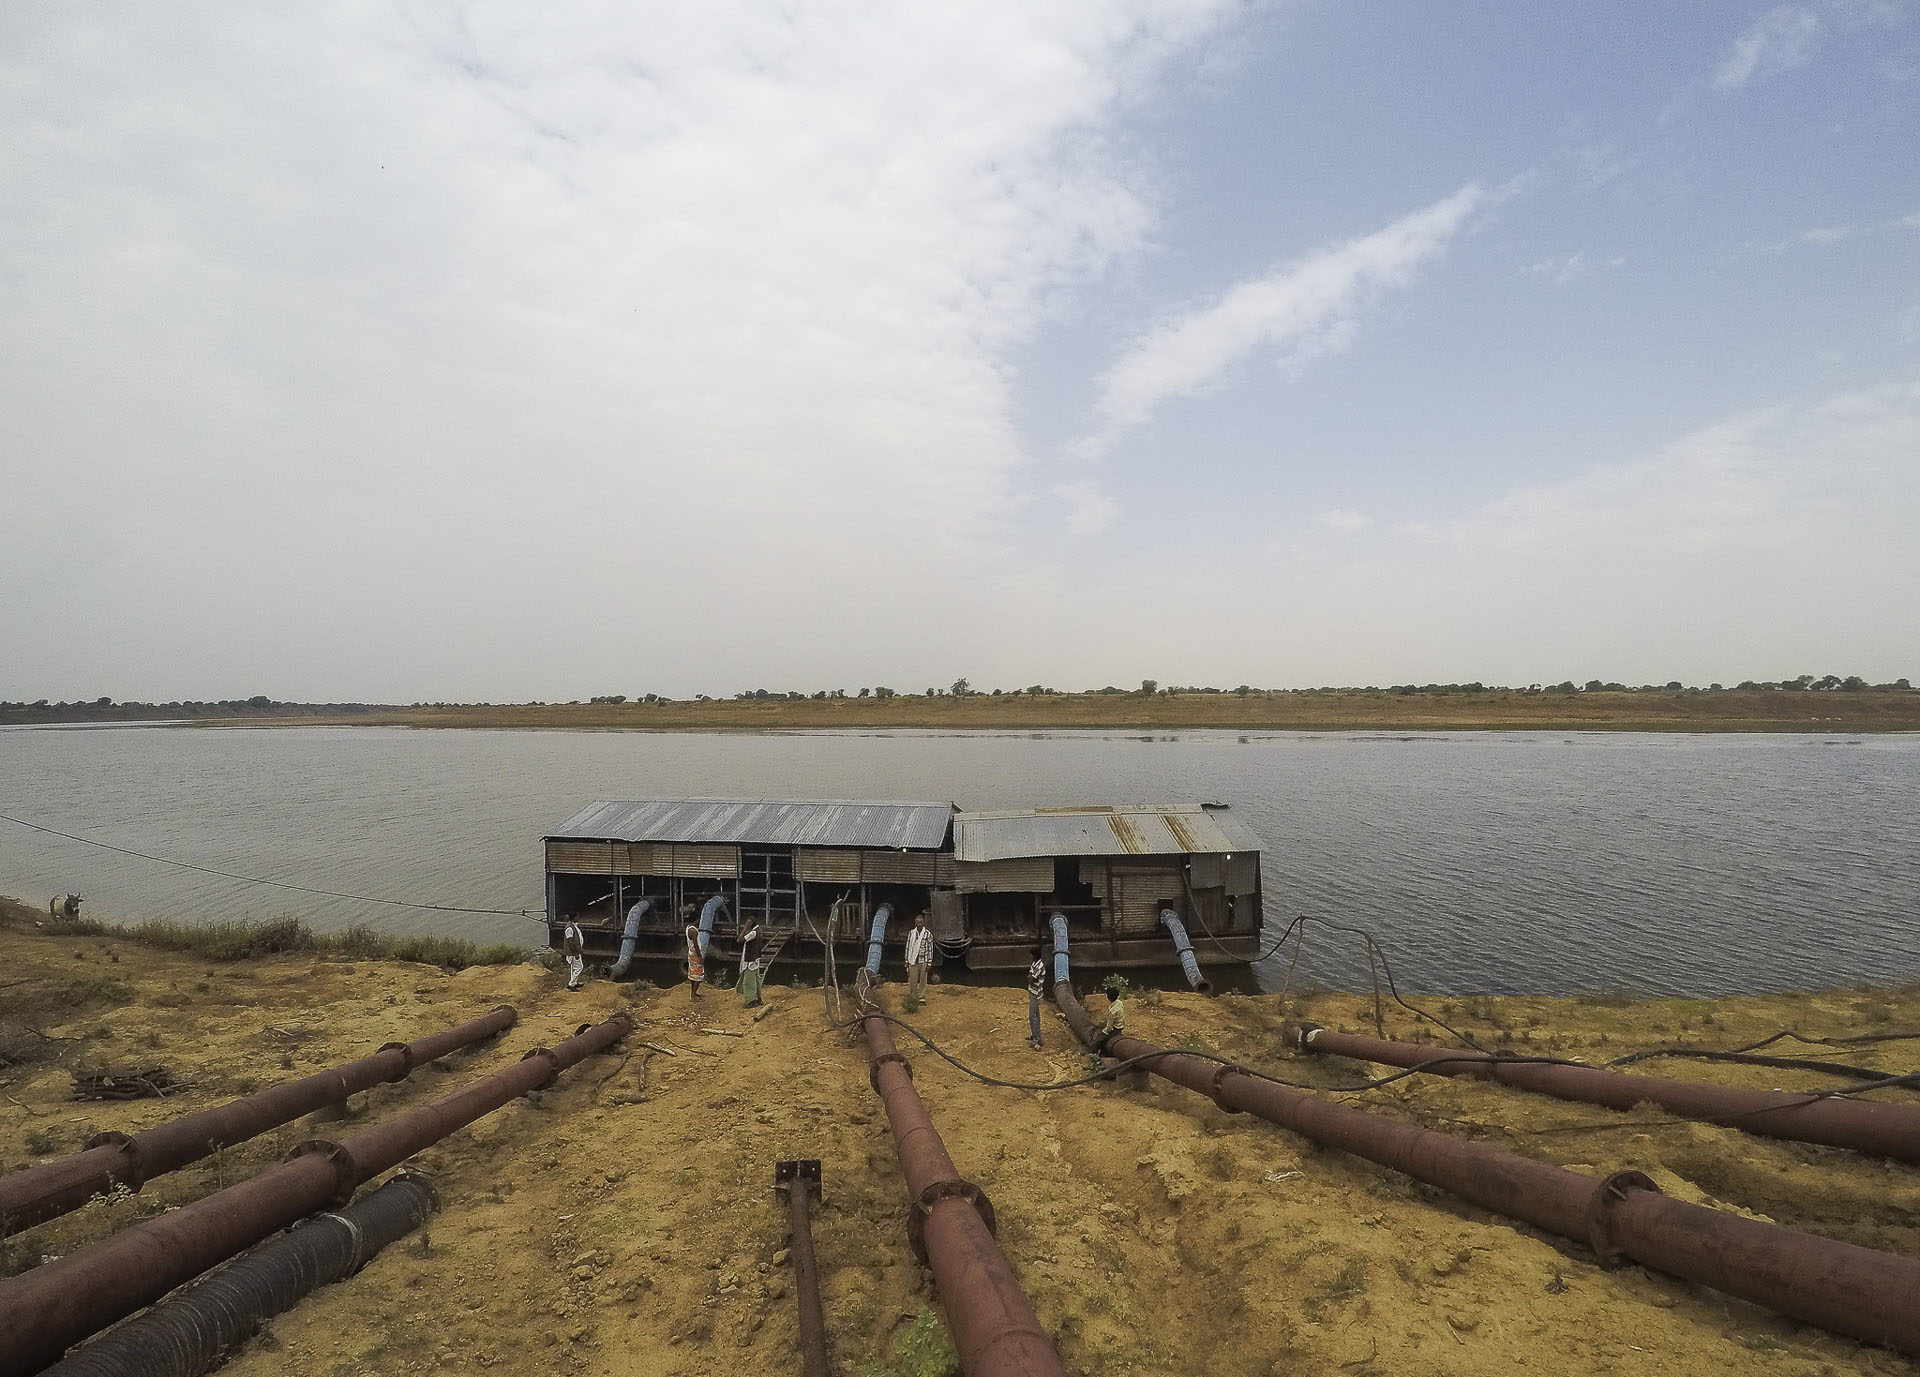 One of the functional lift irrigation projects on the Ken river. Photo by Siddharth Agarwal/Veditum.